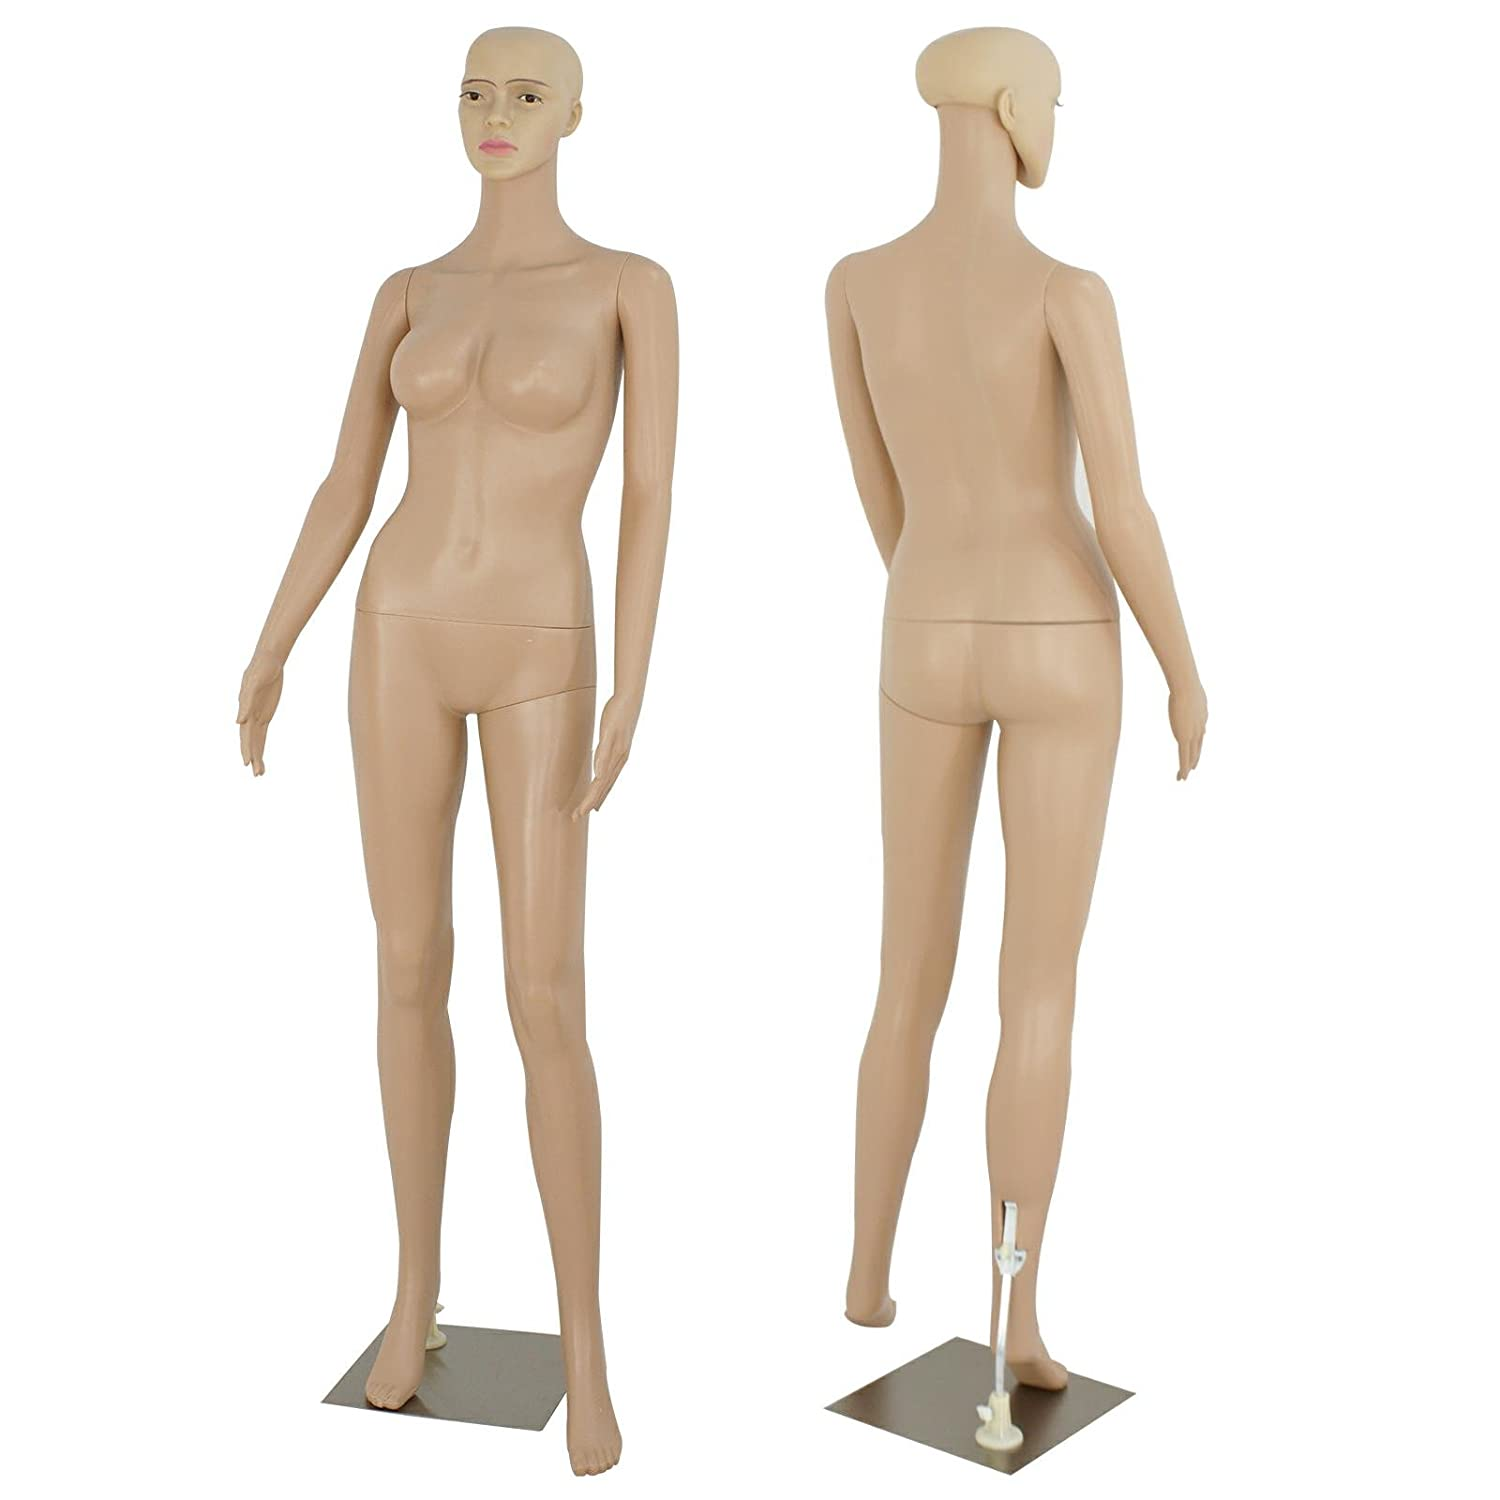 ZENY Full Body 68.9 Height Realistic Female Mannequin Display Head Turns Dress Form w/Base, Detachable Plastic Slapped Adjustable Dressmaker Dummy Standing Adult Plastic Mannequin